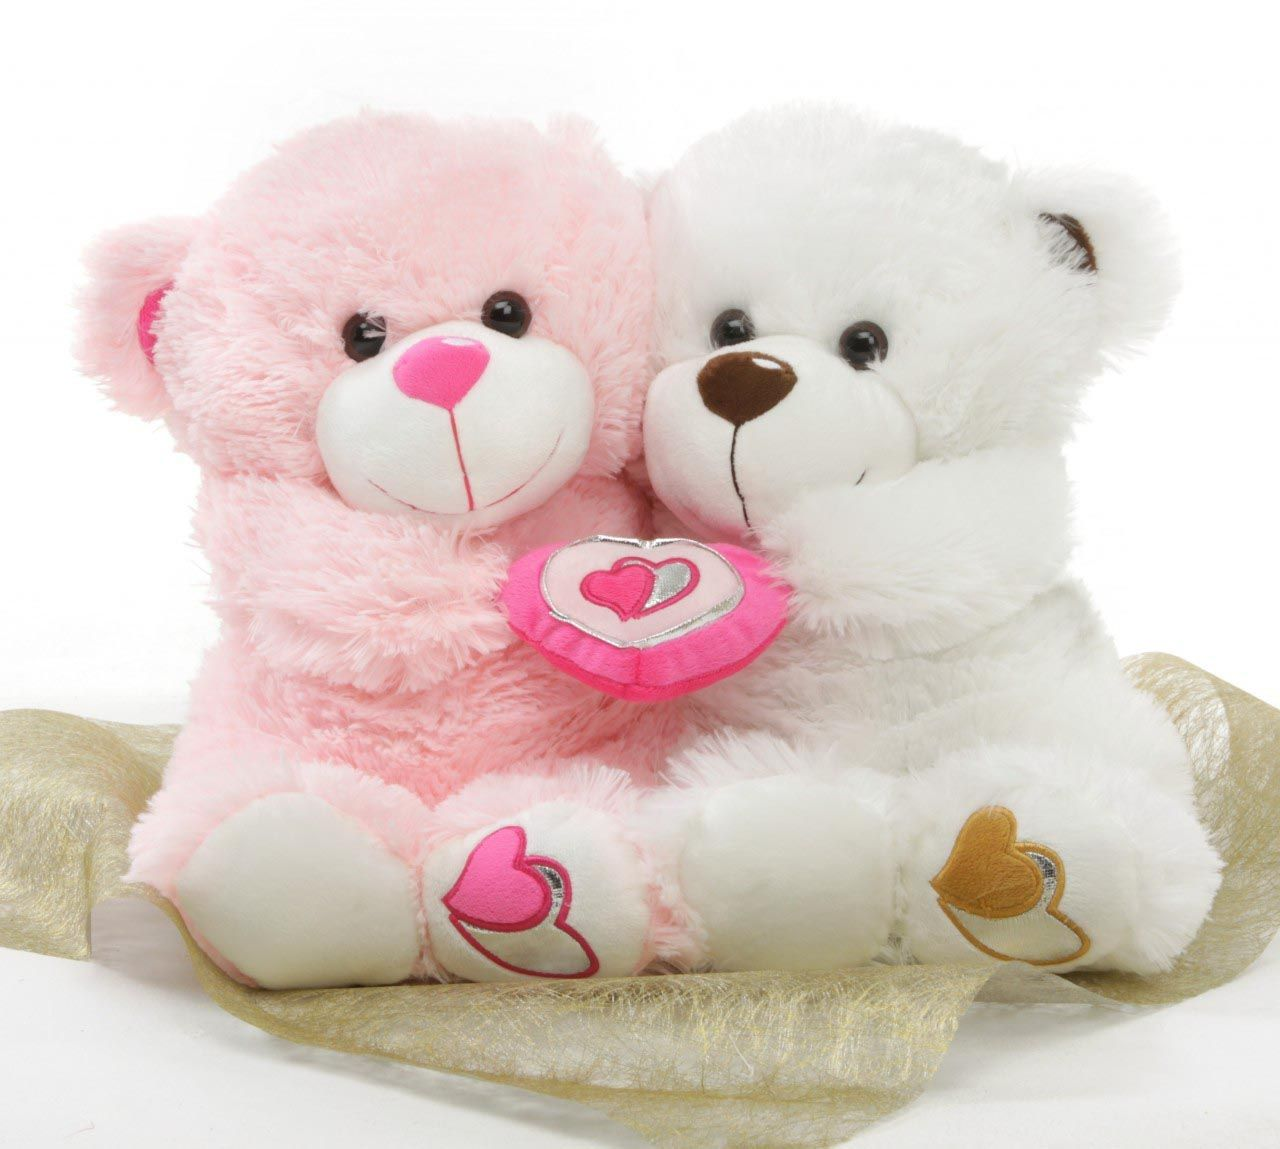 Adorable Teddy Latest Hd Wallpapers Free Download New Hd Android